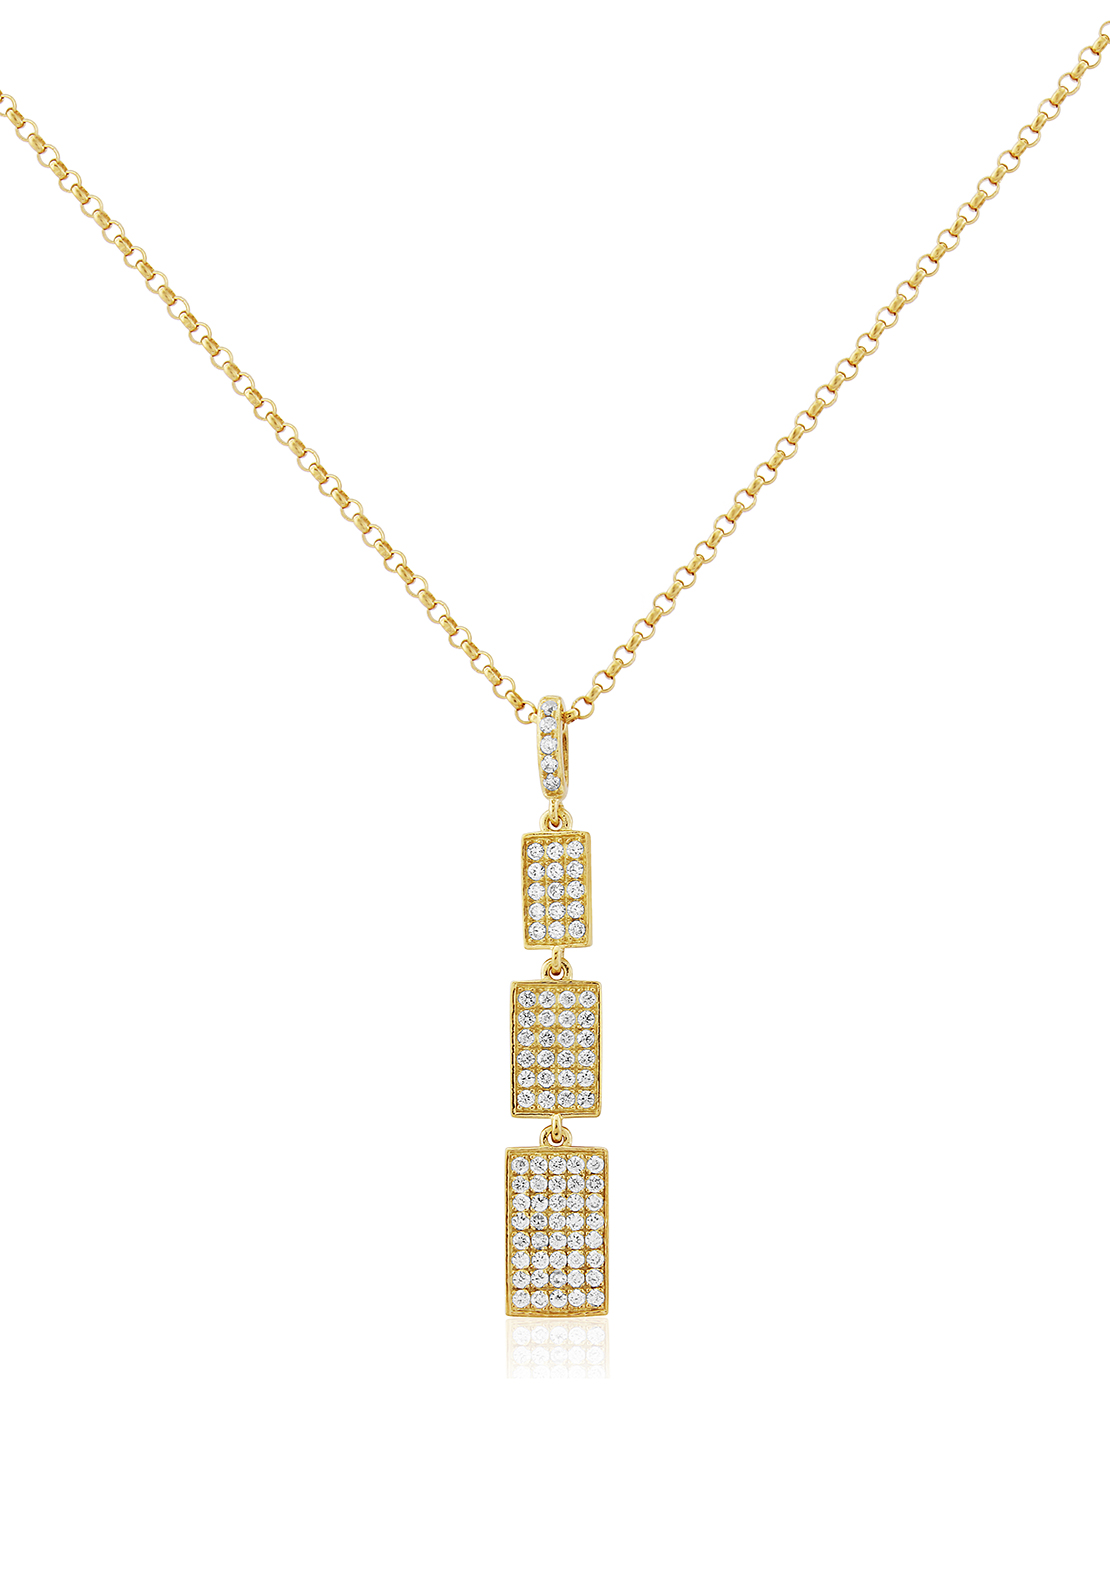 Waterford Crystal Rectangle Pendant Necklace, Gold